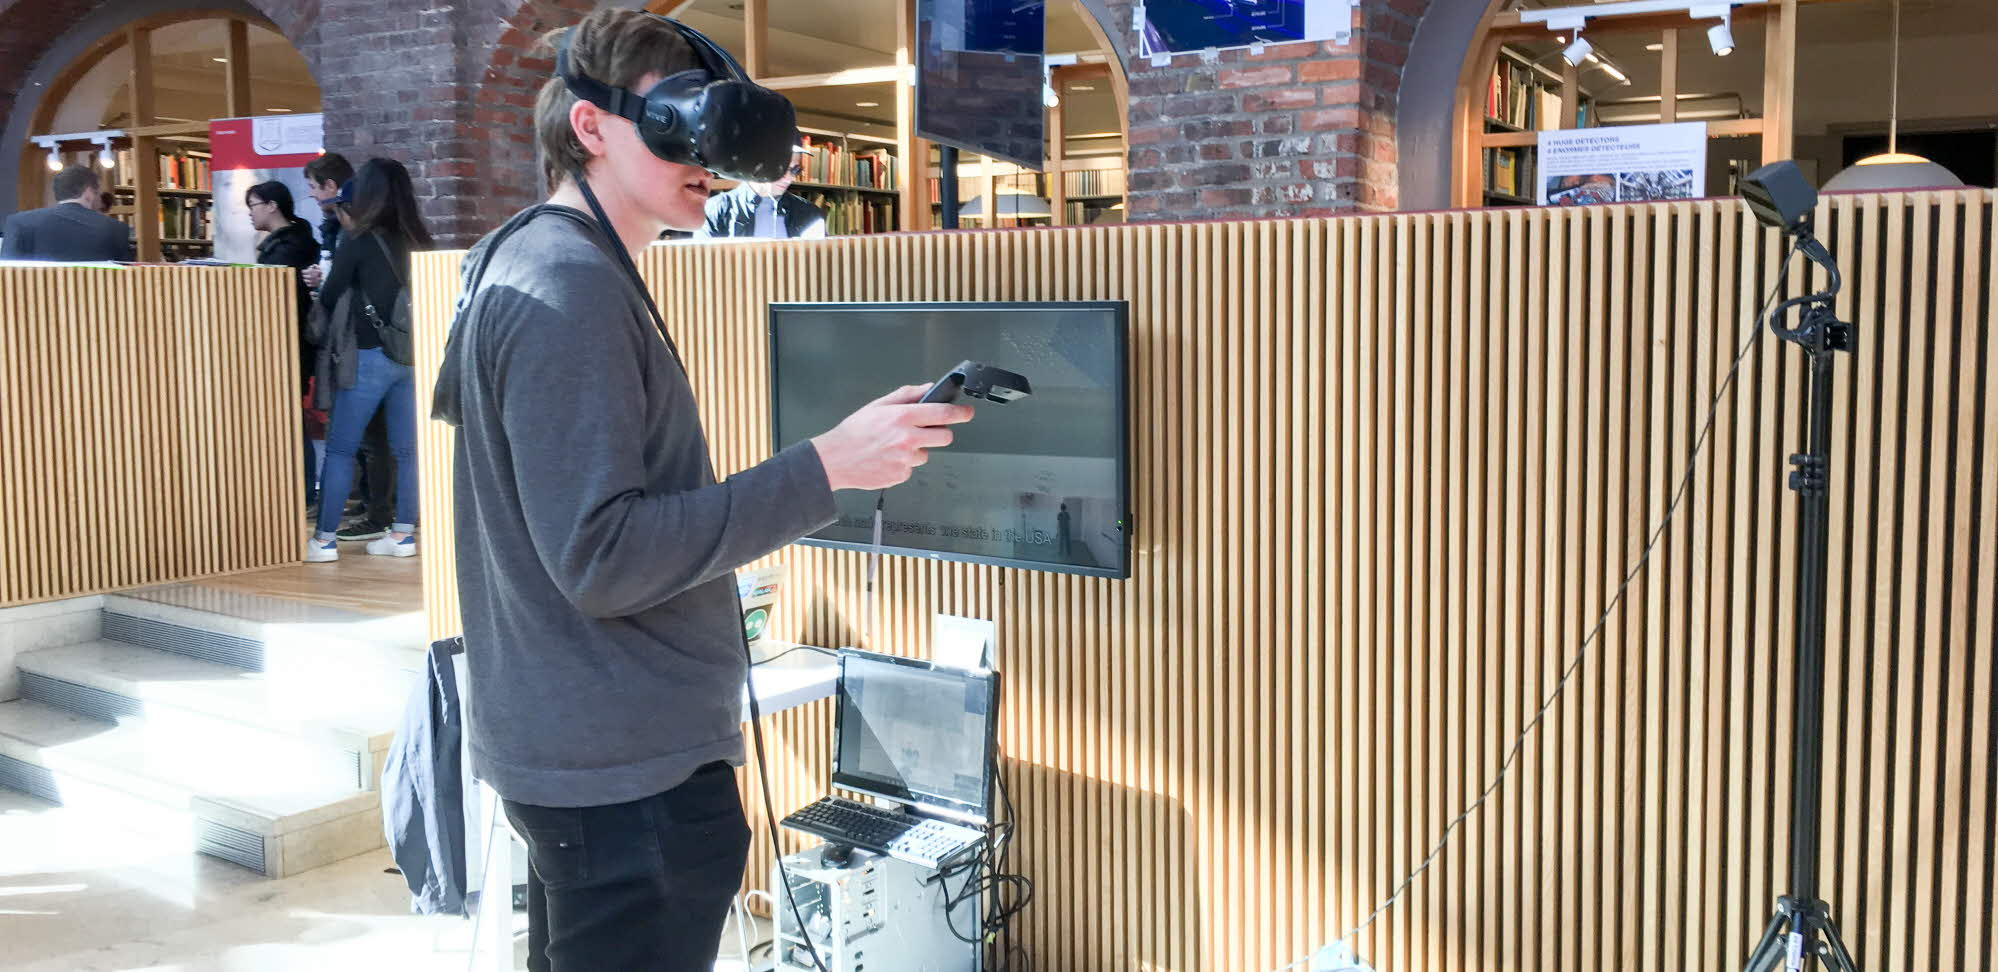 visitor testing the vr project